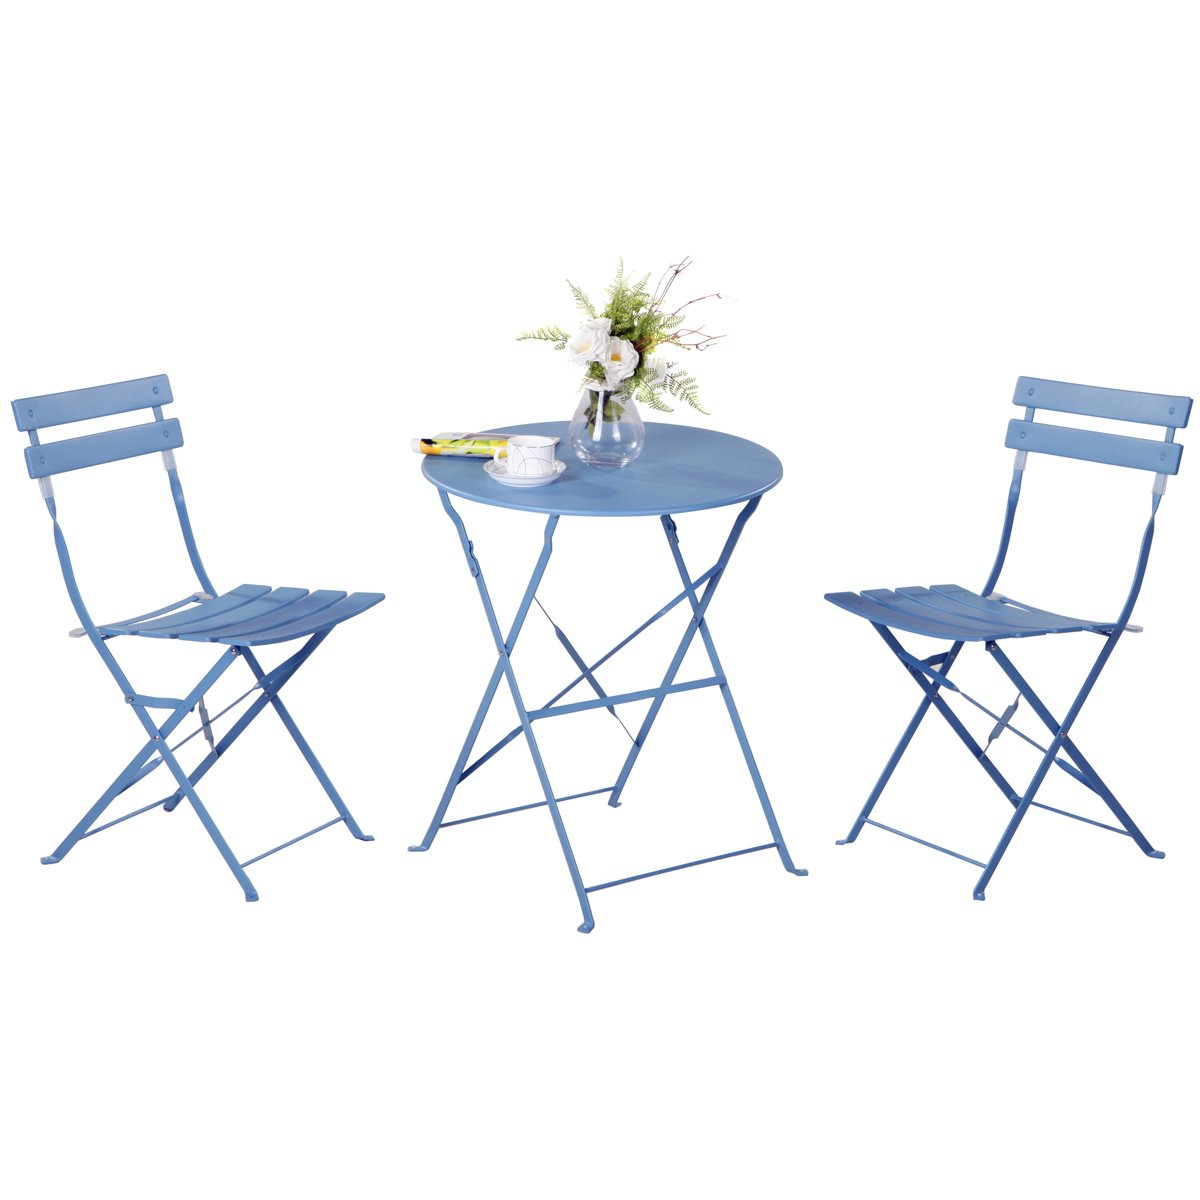 Amazon com grand patio premium steel patio bistro set folding outdoor patio furniture sets 3 piece patio set of foldable patio table and chairs blue